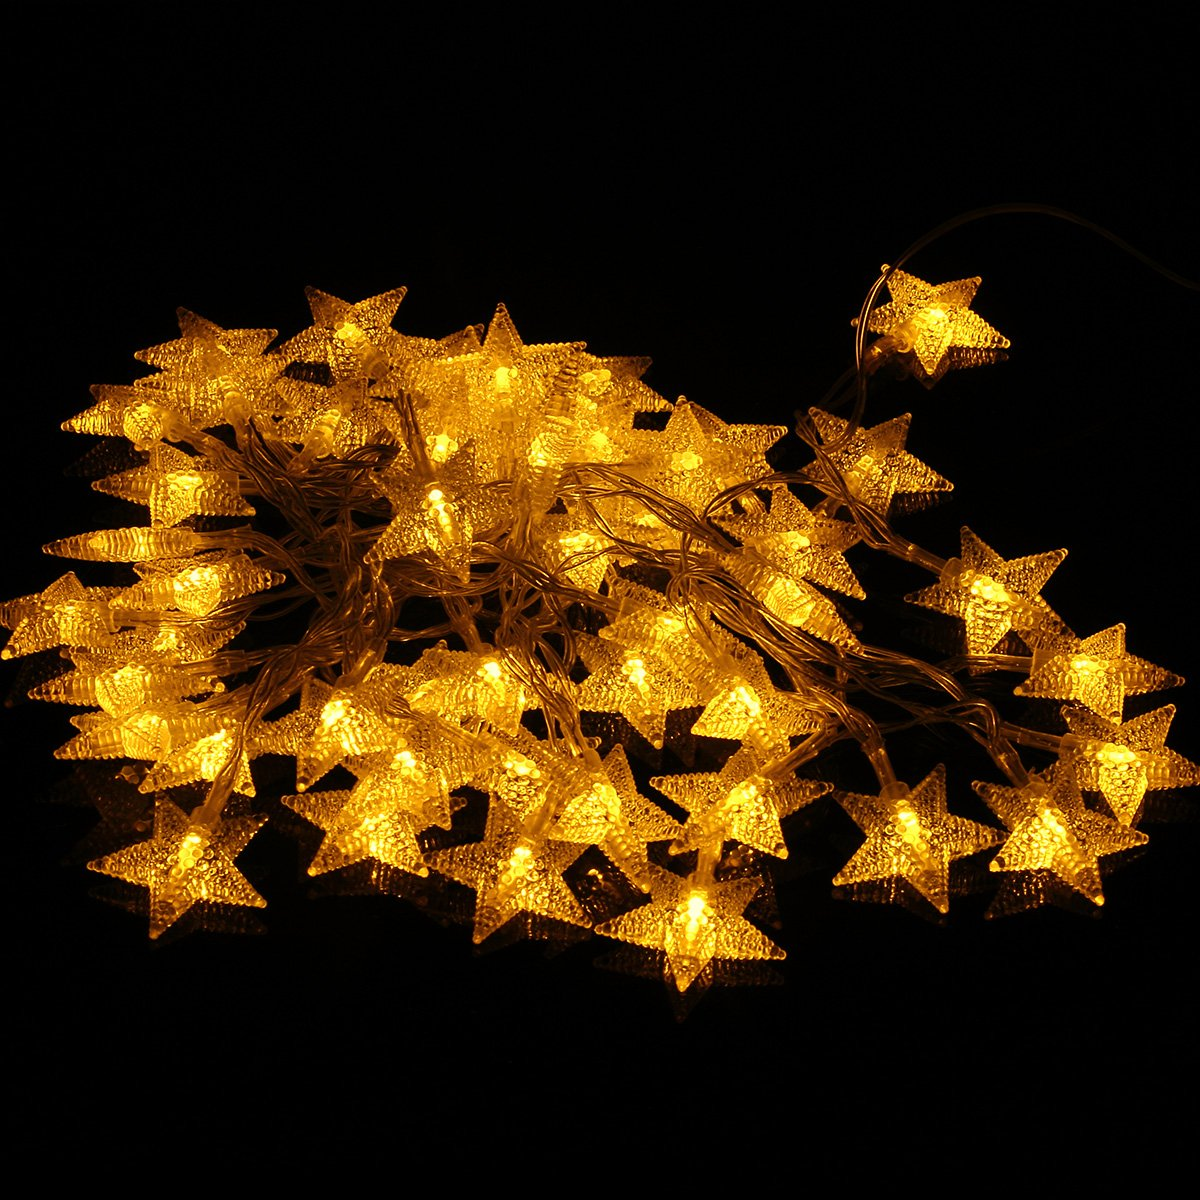 amazoncom remote timer battery operated christmas star led string lights 16 feet 50 led fairy string lights for indoor outdoor garden - Amber Christmas Lights